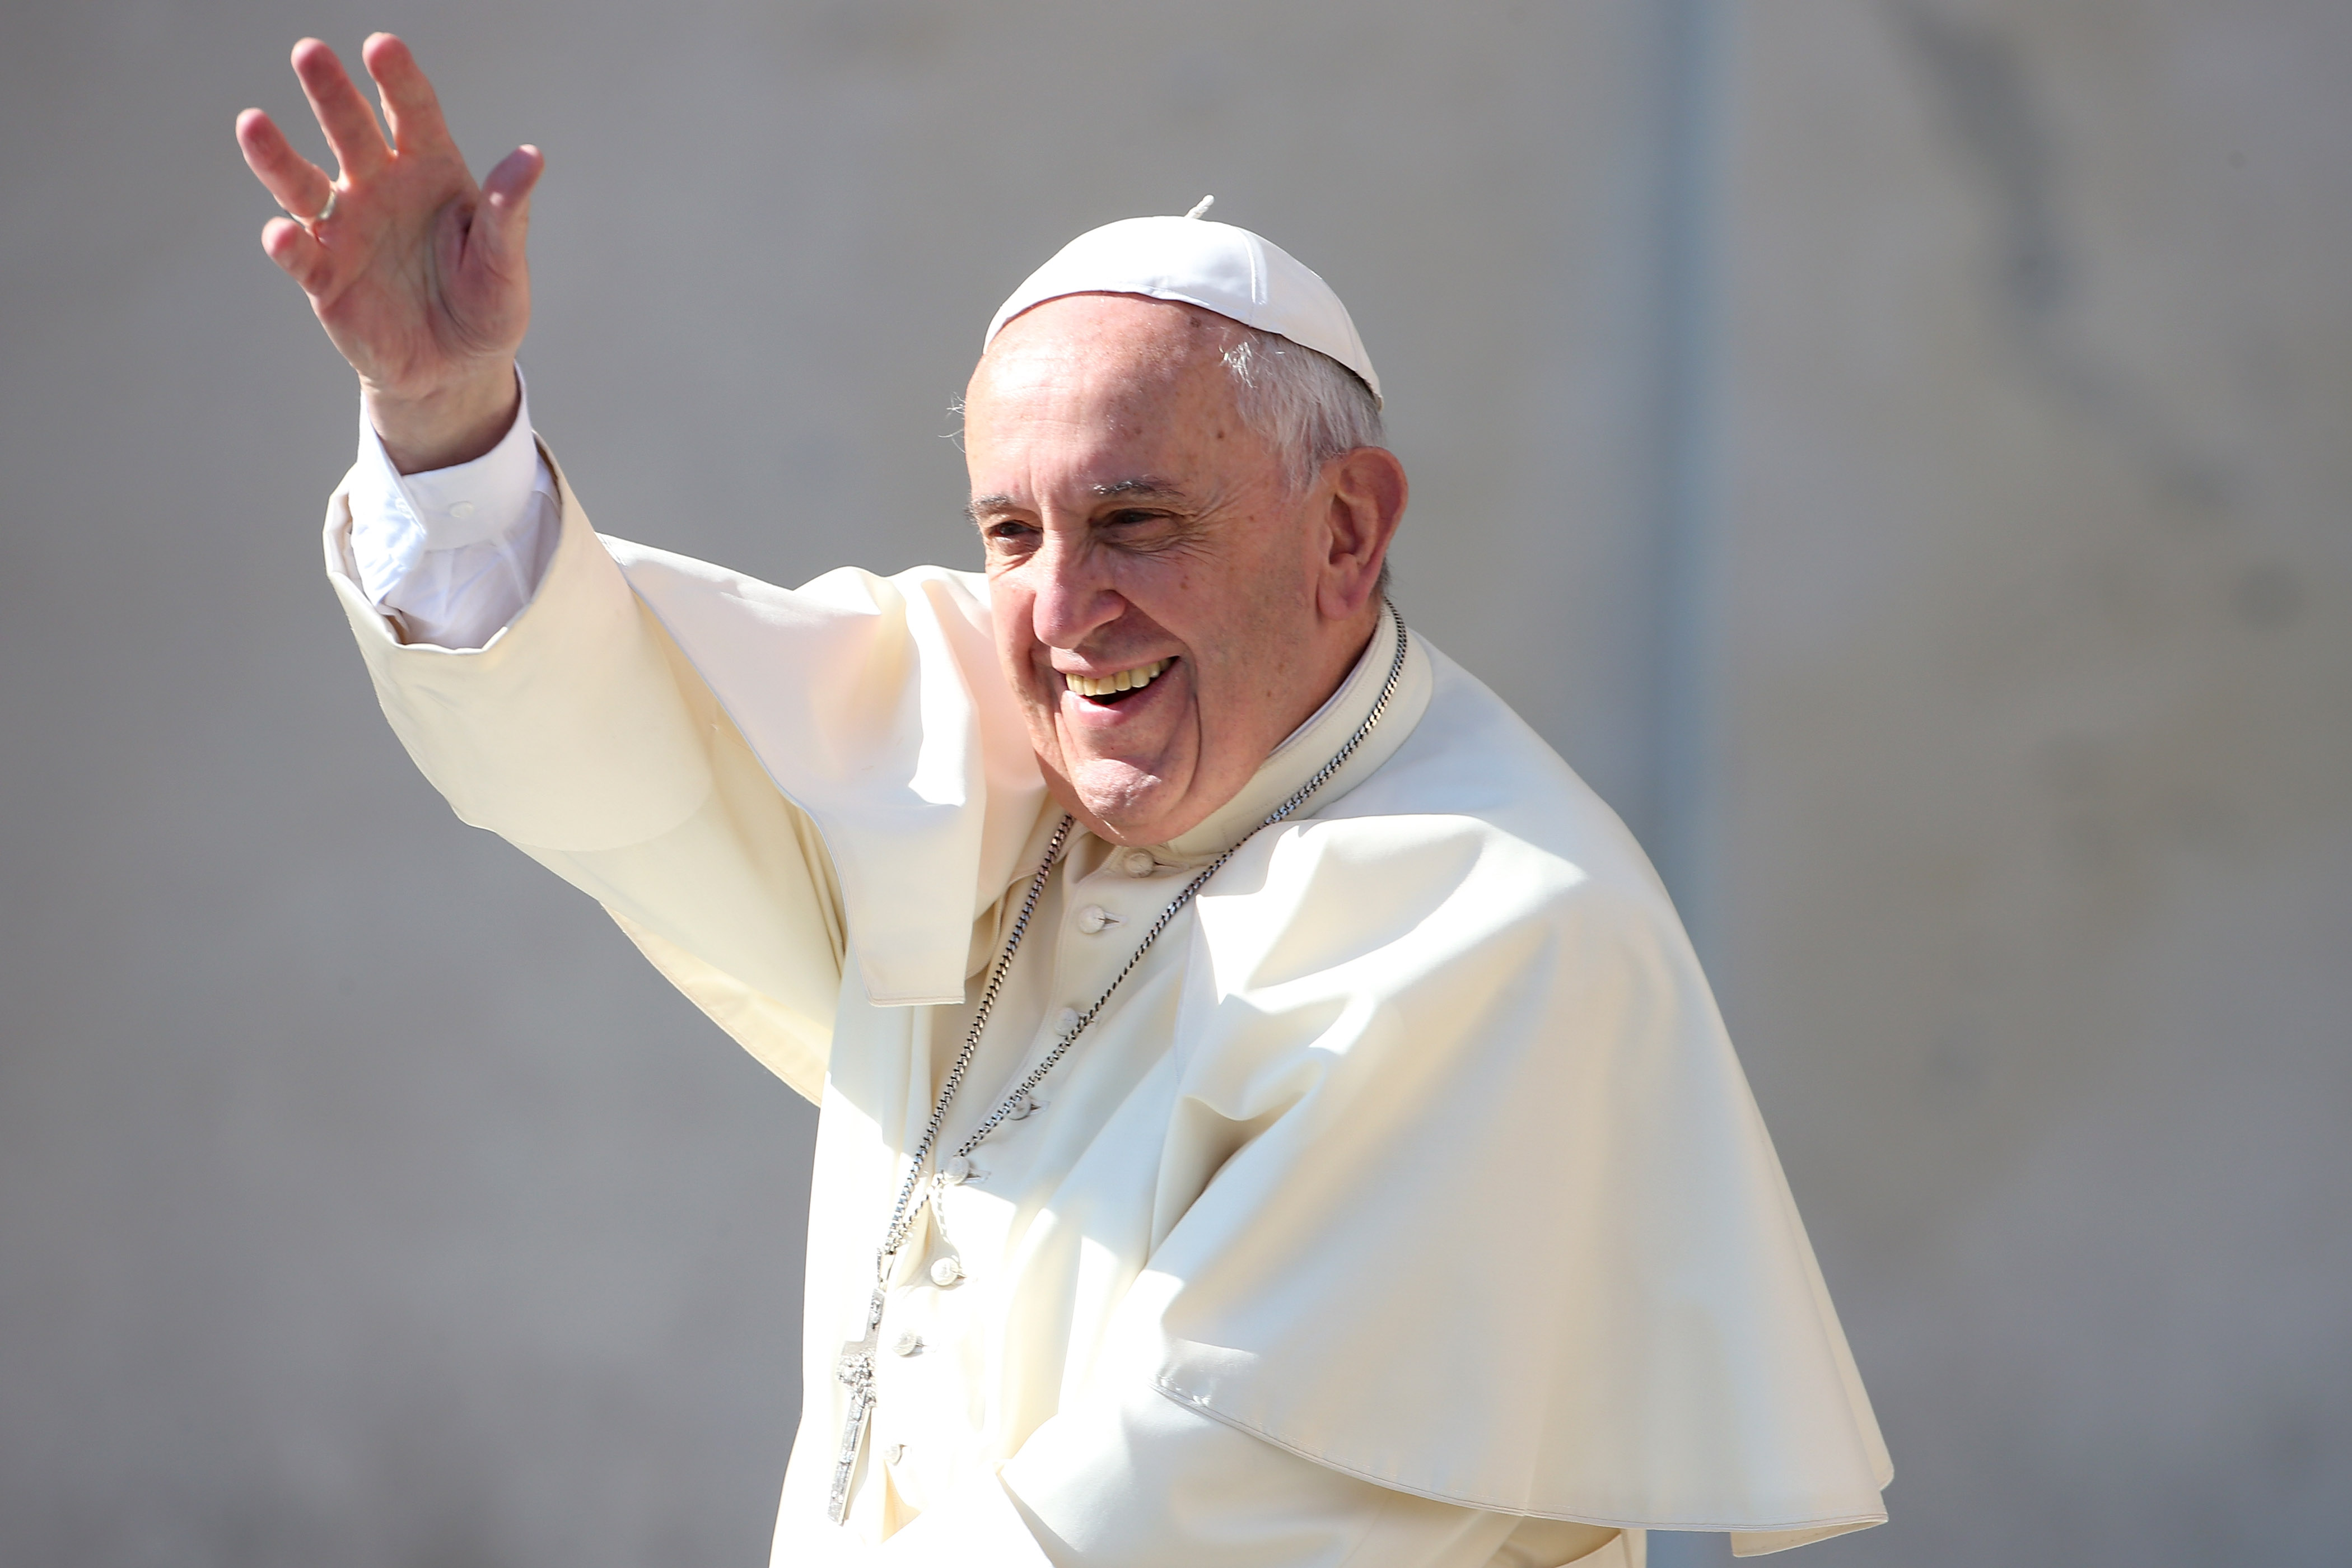 Pope Francis waves to the faithful as he arrives in St. Peter's Square for his weekly audience in Vatican City on May 4, 2016.